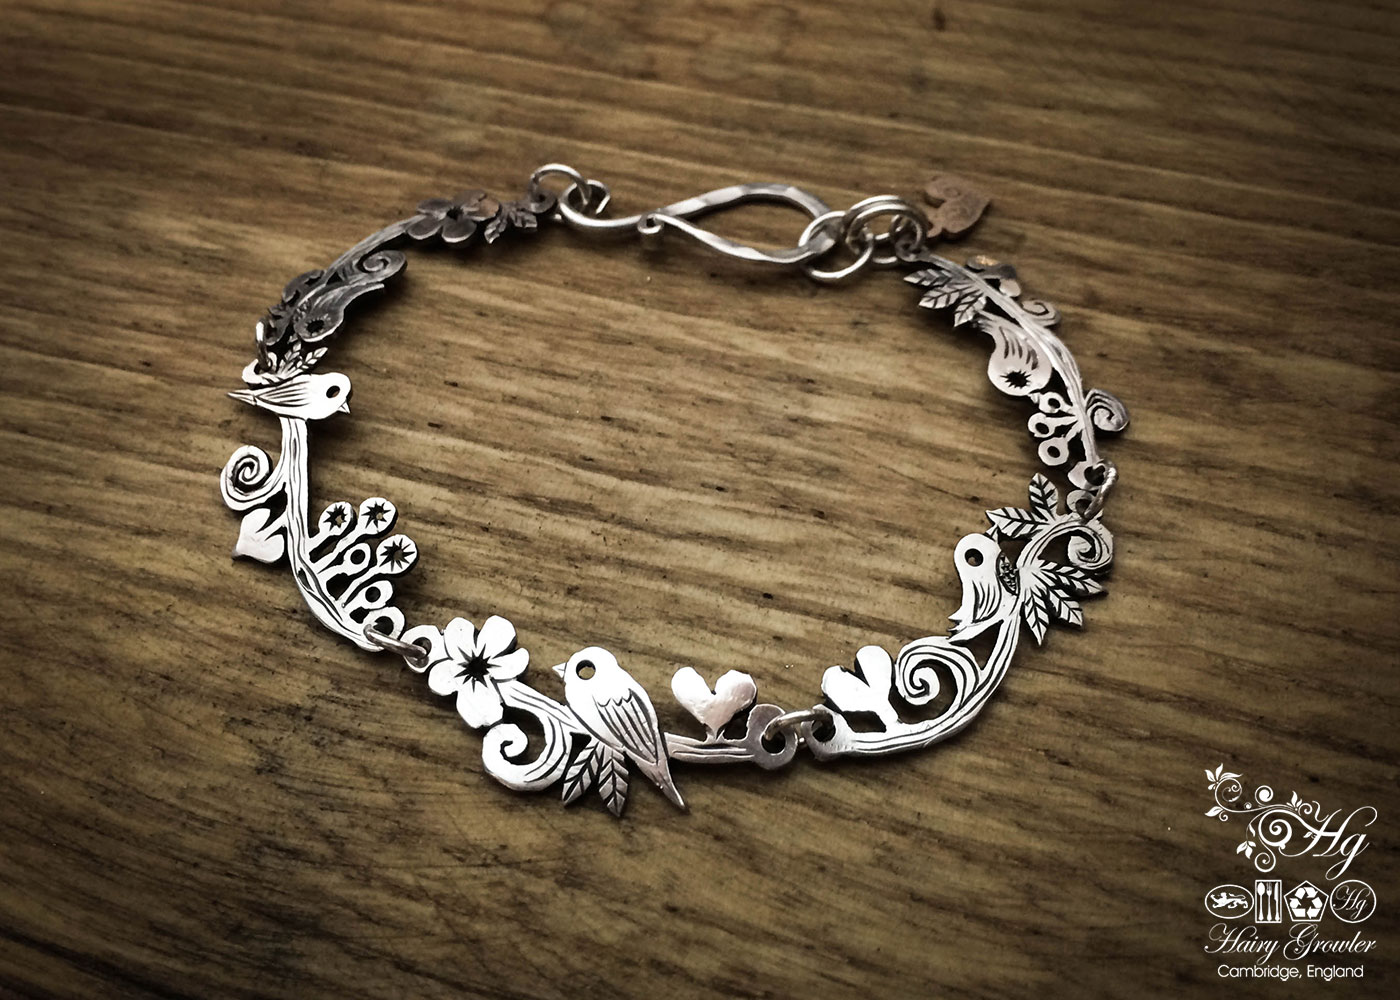 Bird bracelet individually handcrafted and recycled from Victorian silver coins